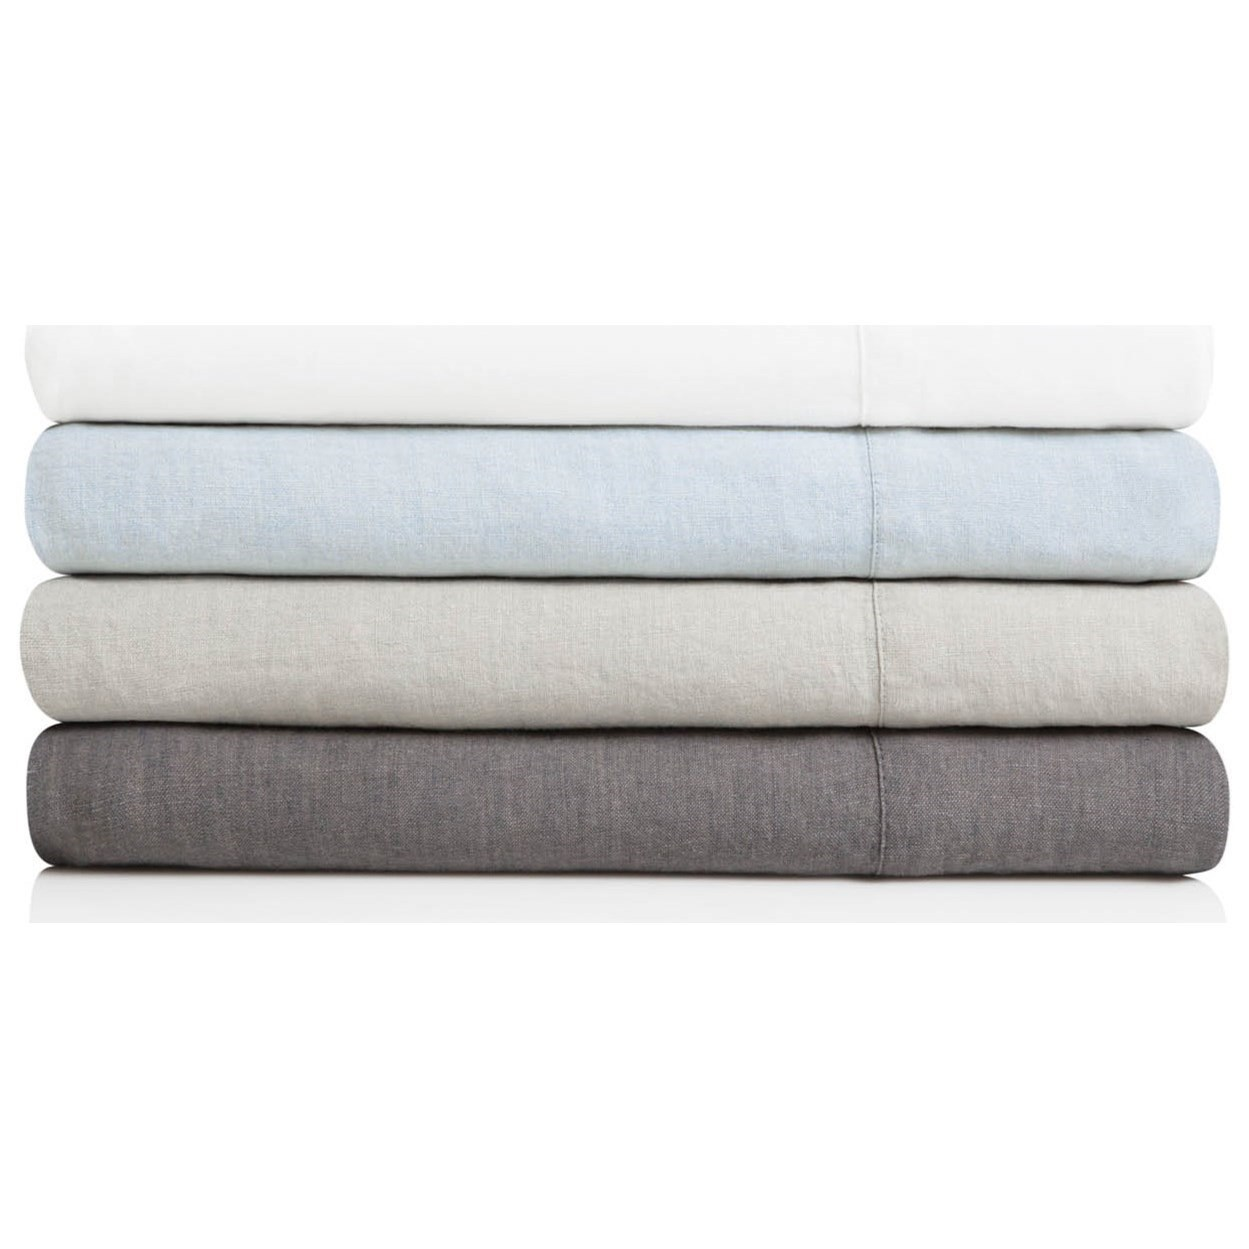 French Linen Cal King 100% French Linen Sheet Set by Malouf at Northeast Factory Direct